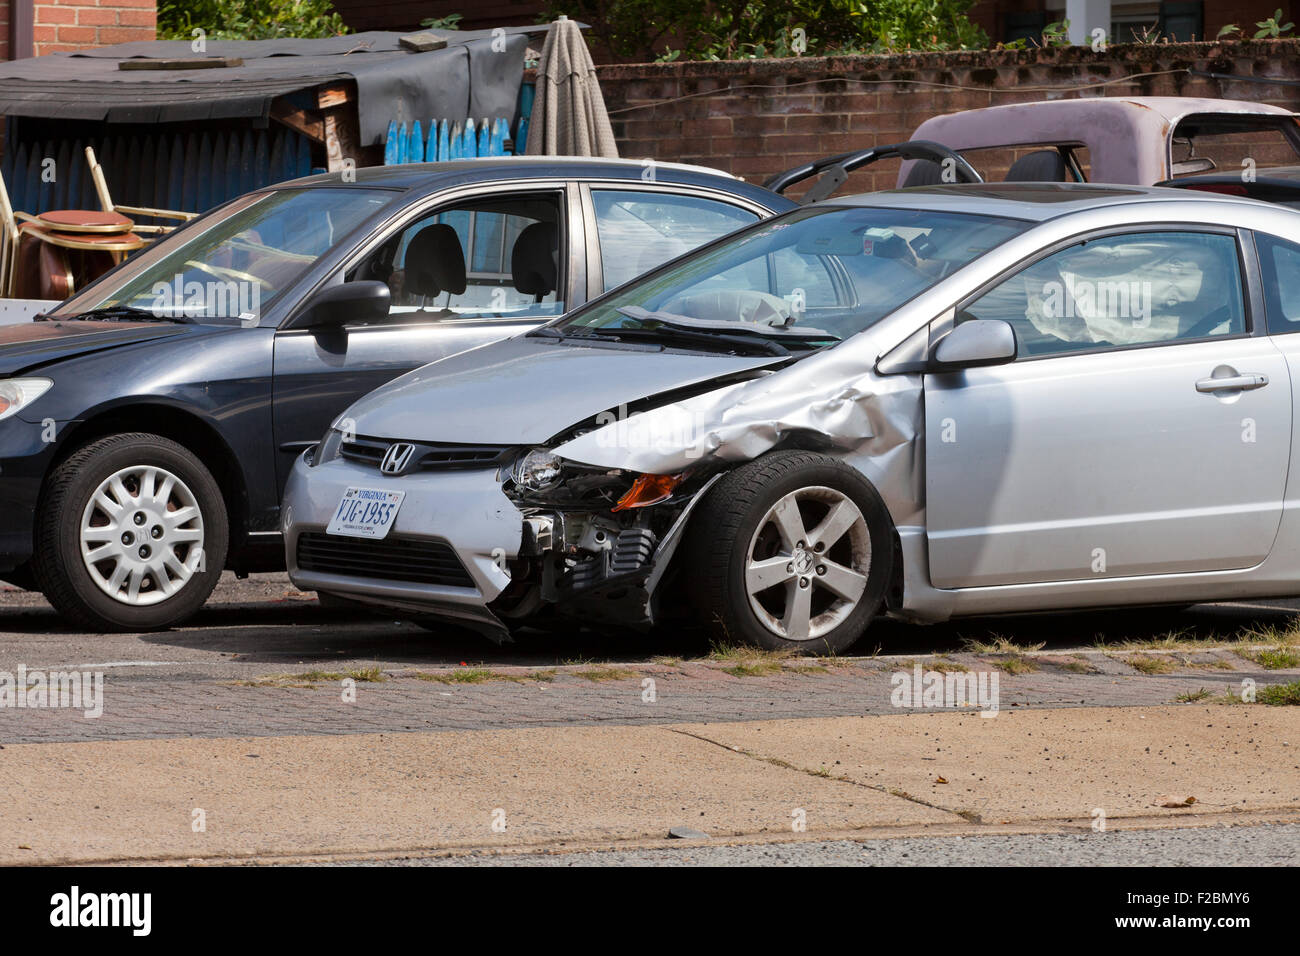 Car with front fender collision damage - USA - Stock Image